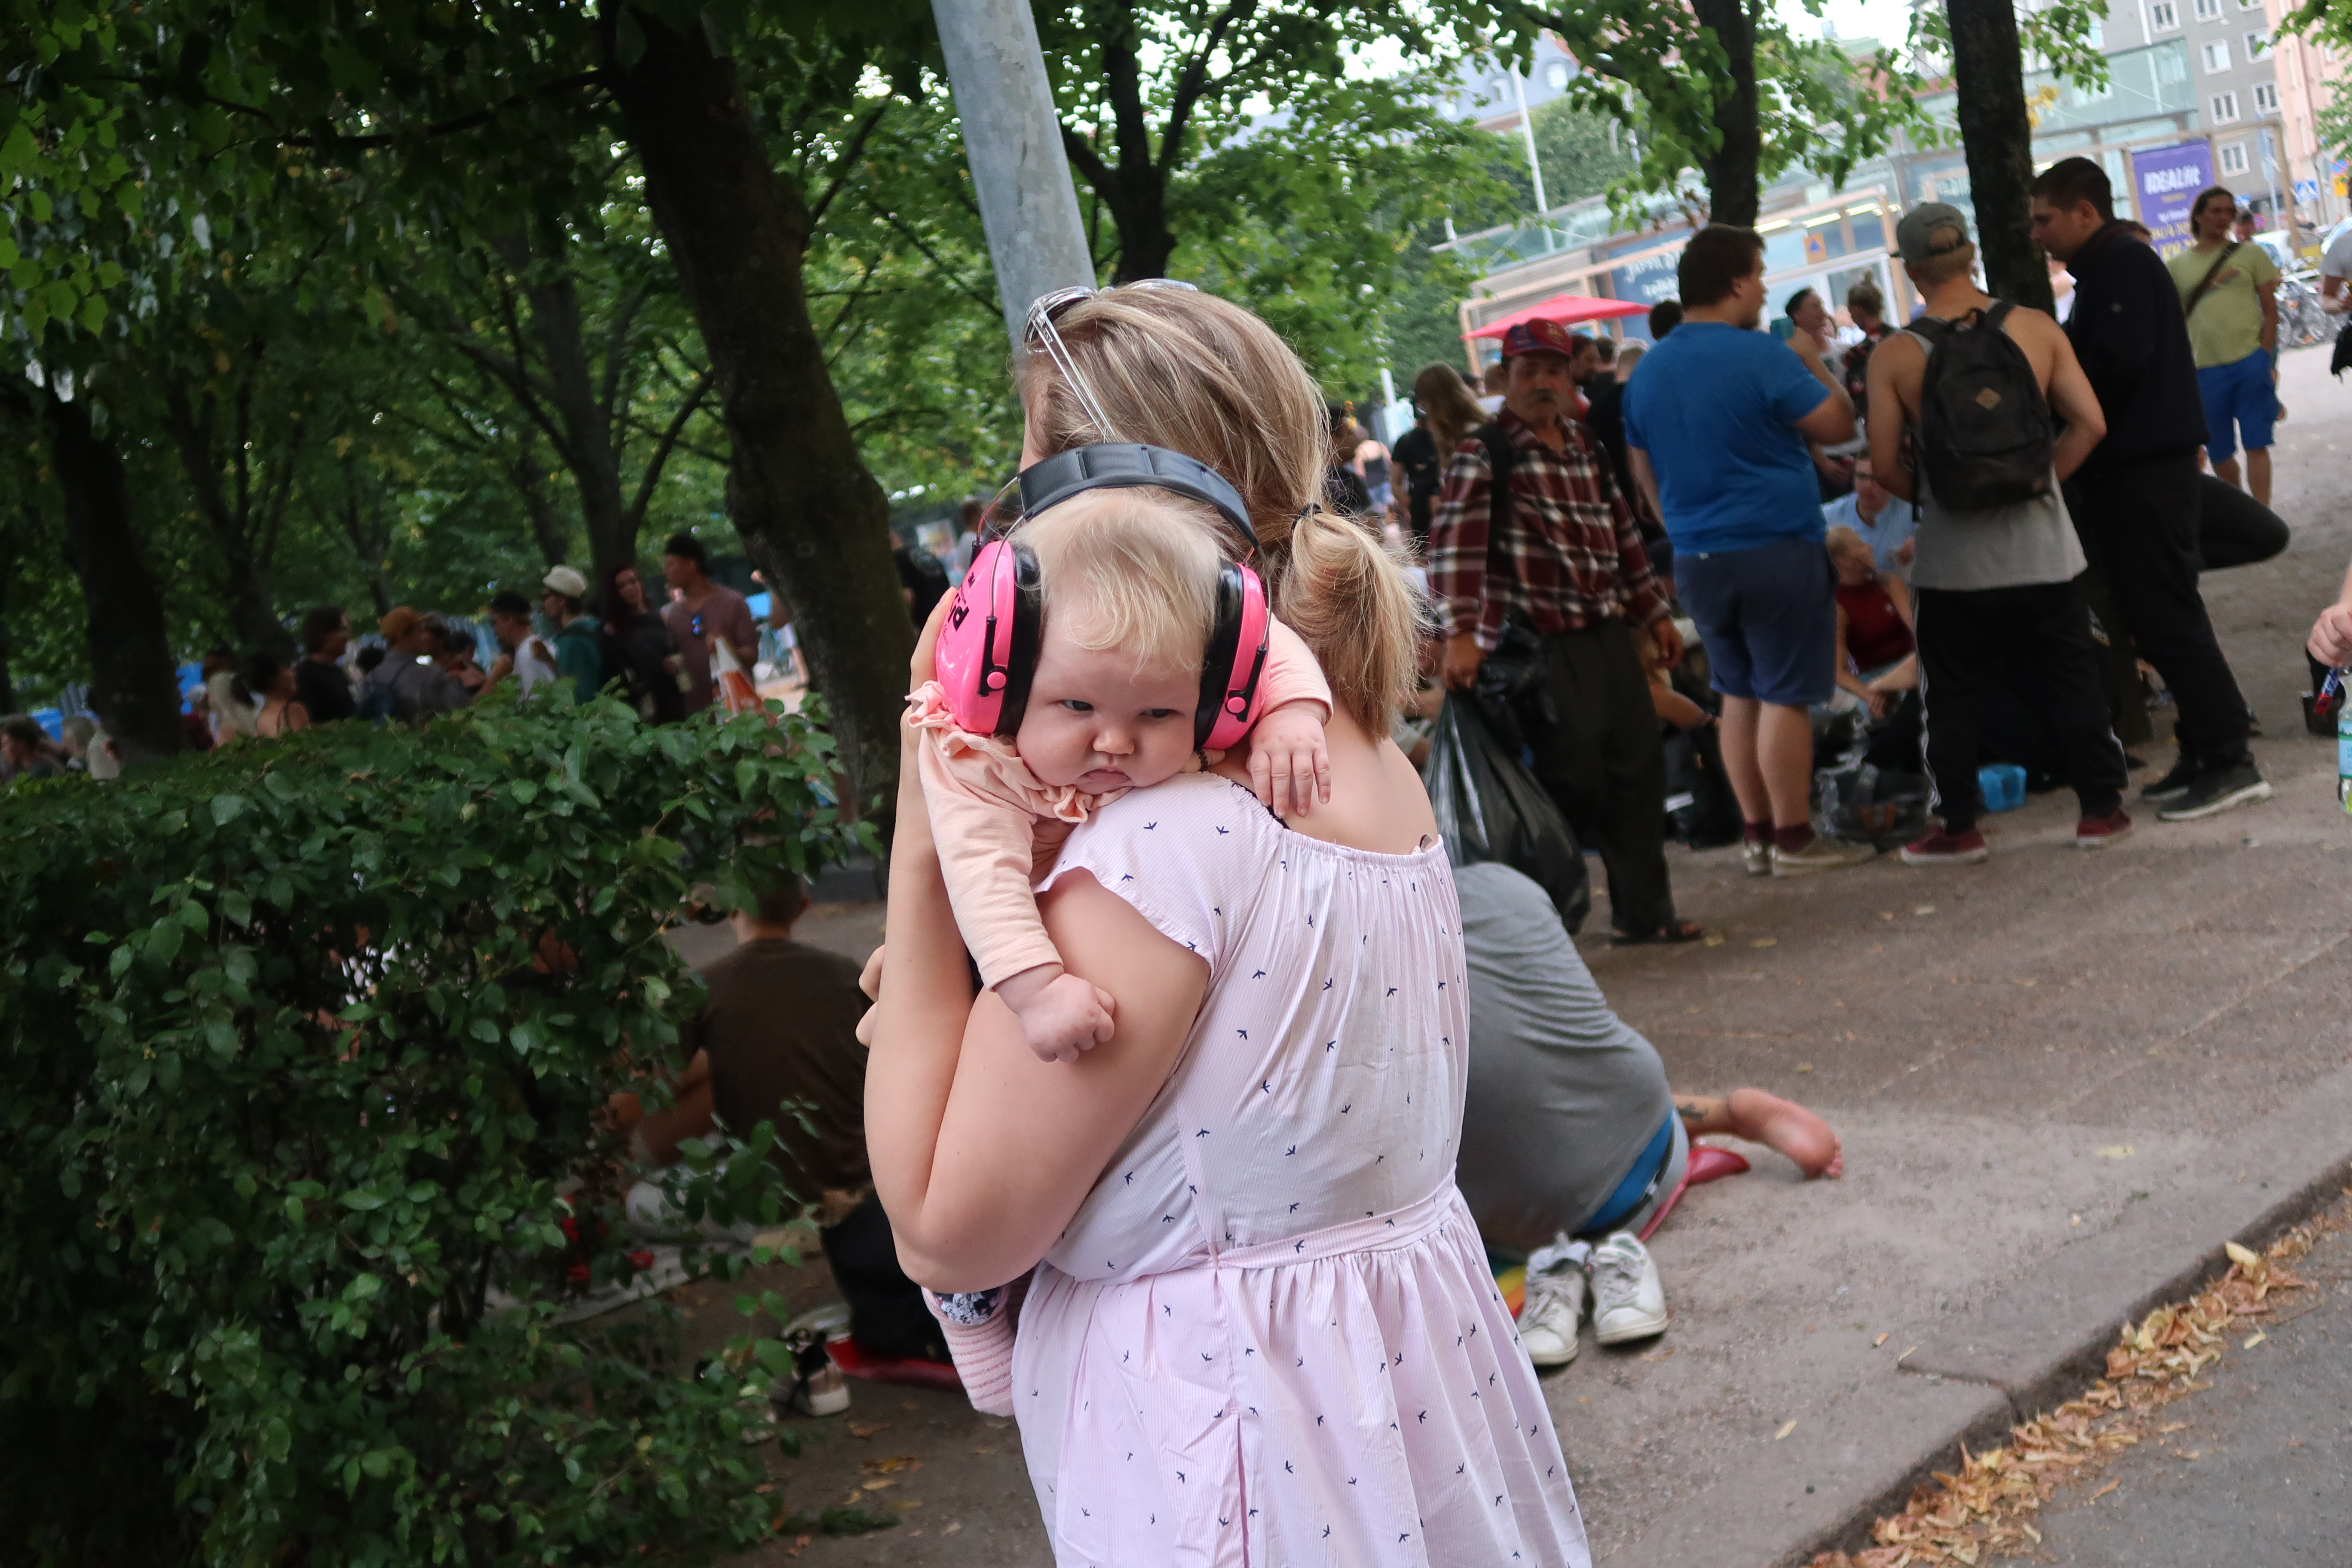 Children are brought to all kinds of events in Helsinki